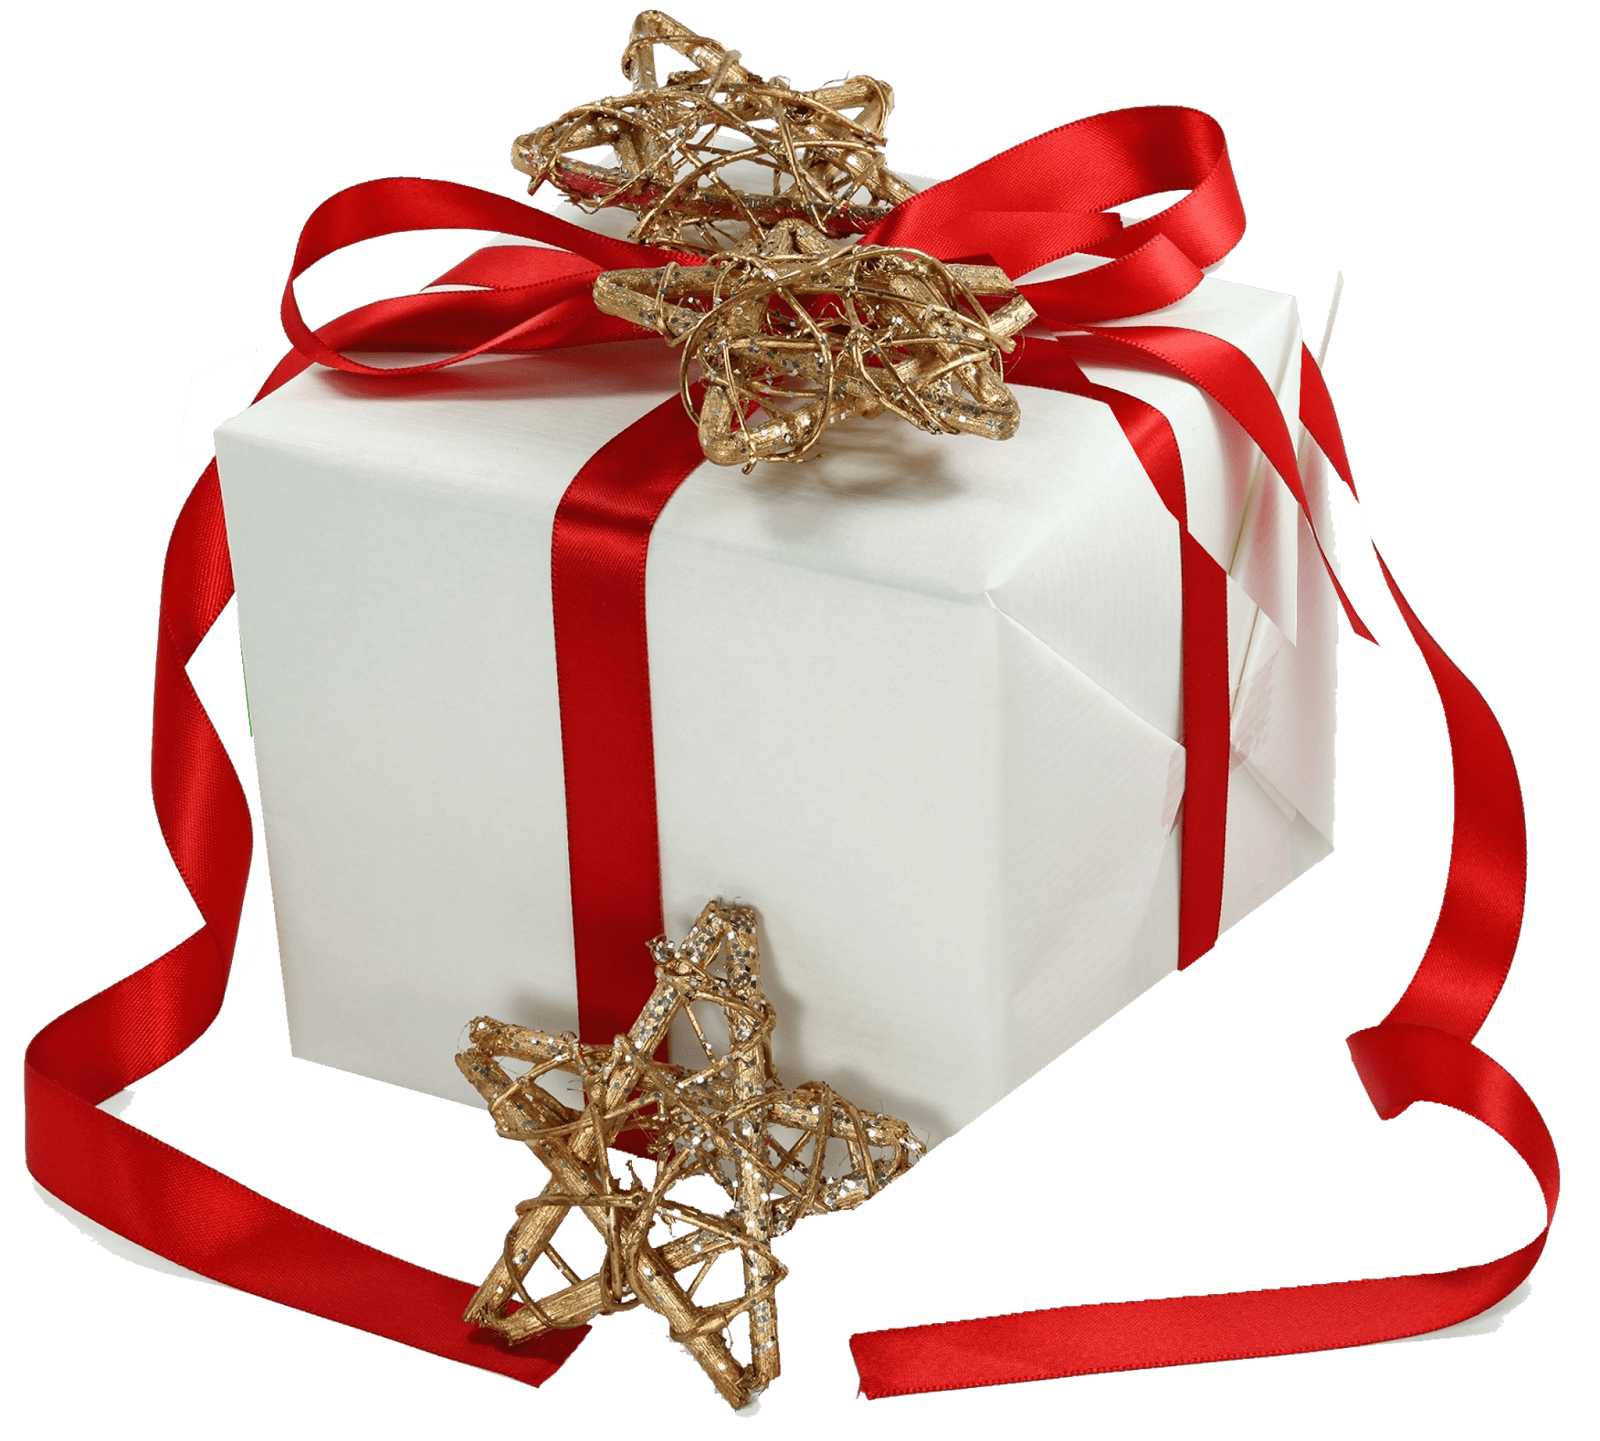 christmas gift ribbon gold stars transparent png stickpng #9667